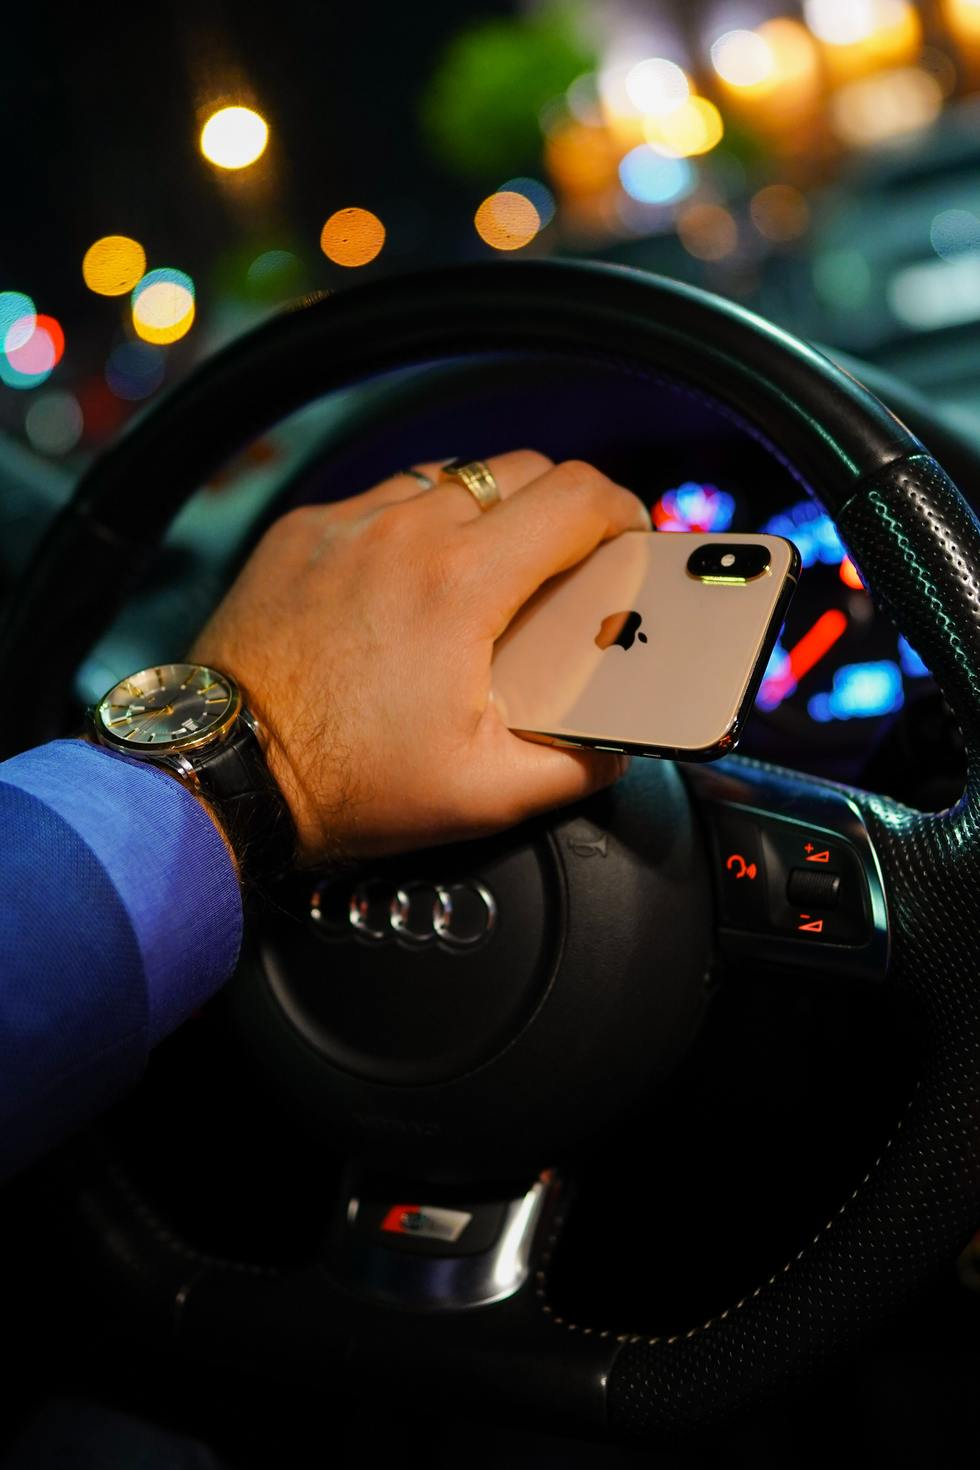 Man holds gold iPhone in hand on steering wheel.